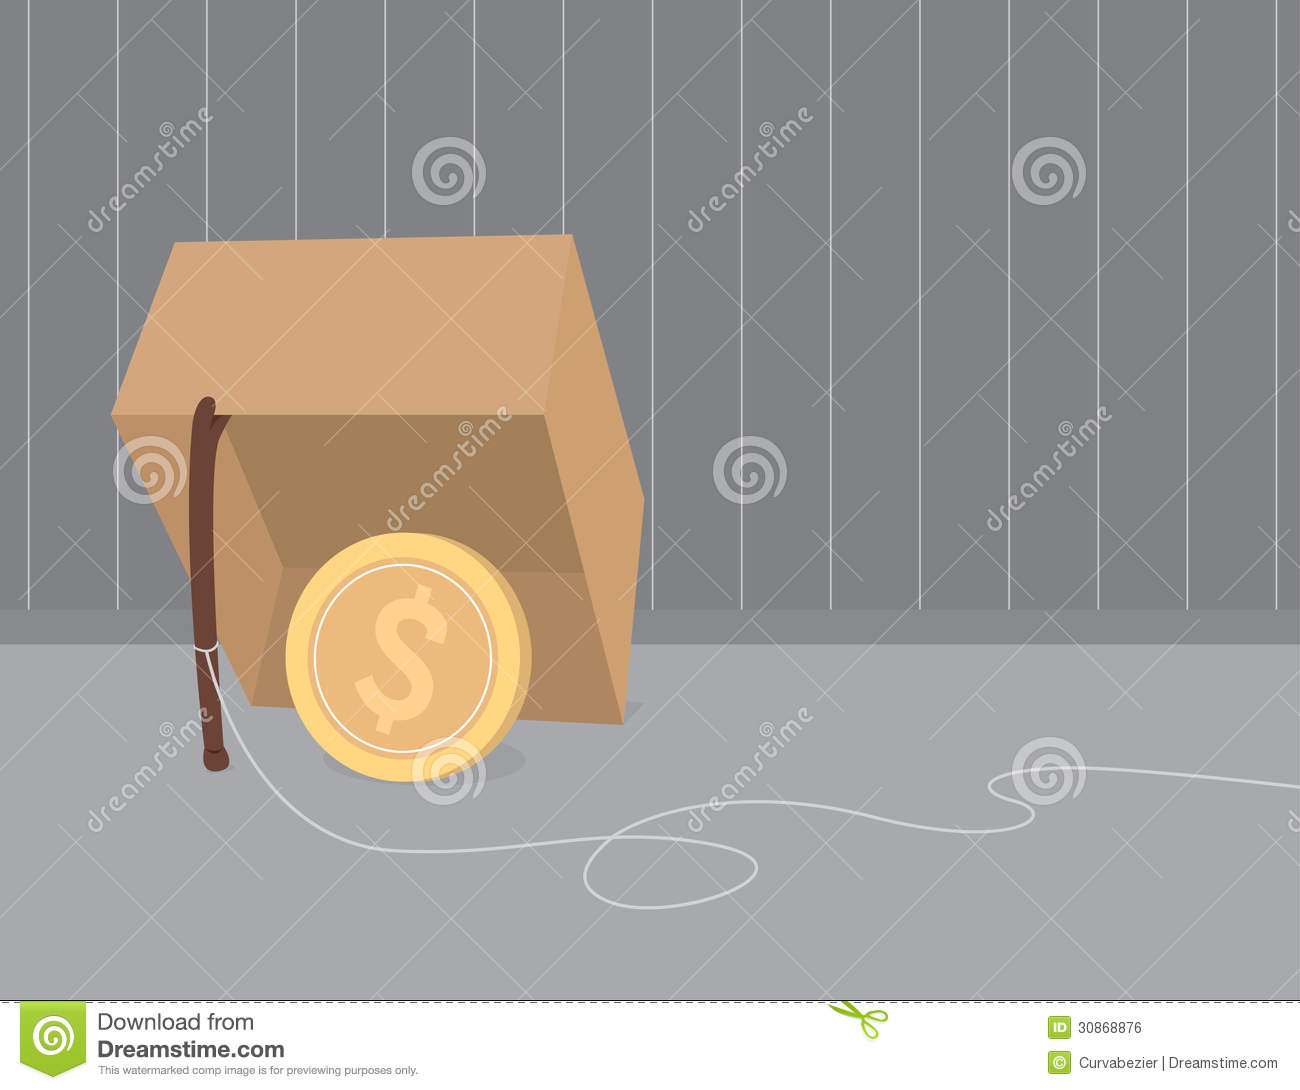 Money trap using coin as bait